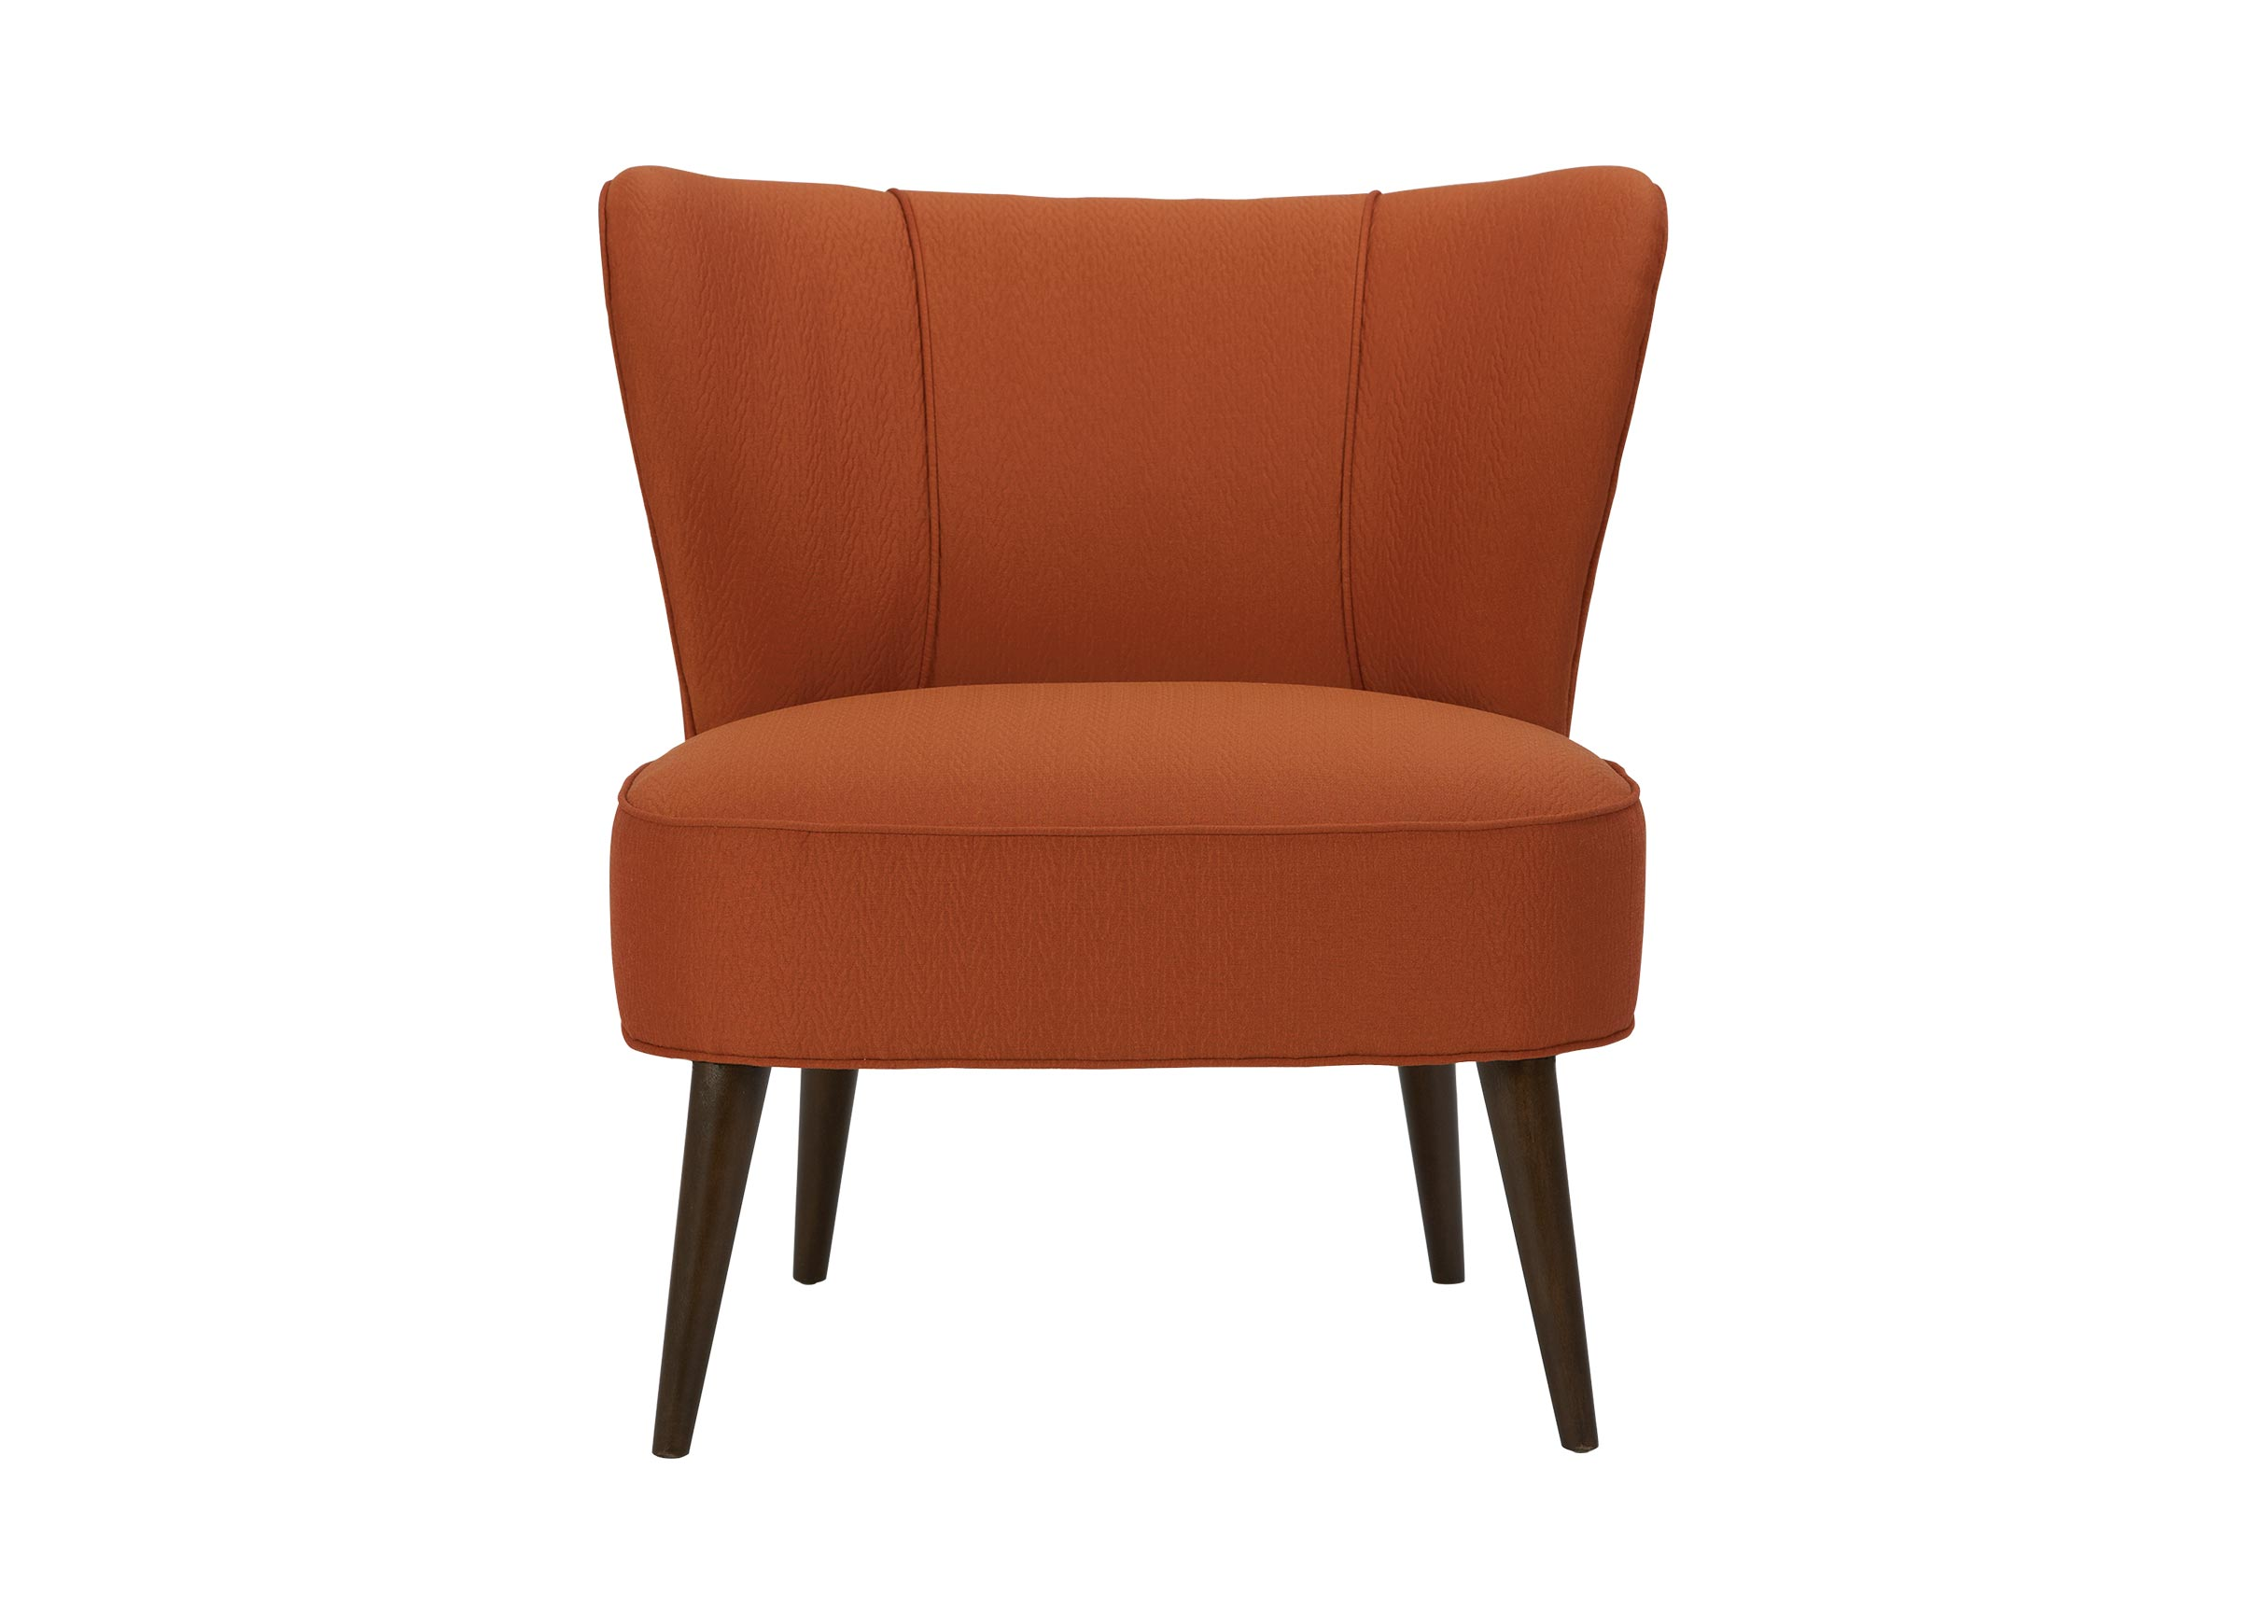 Images Perry Chair , , Large_gray